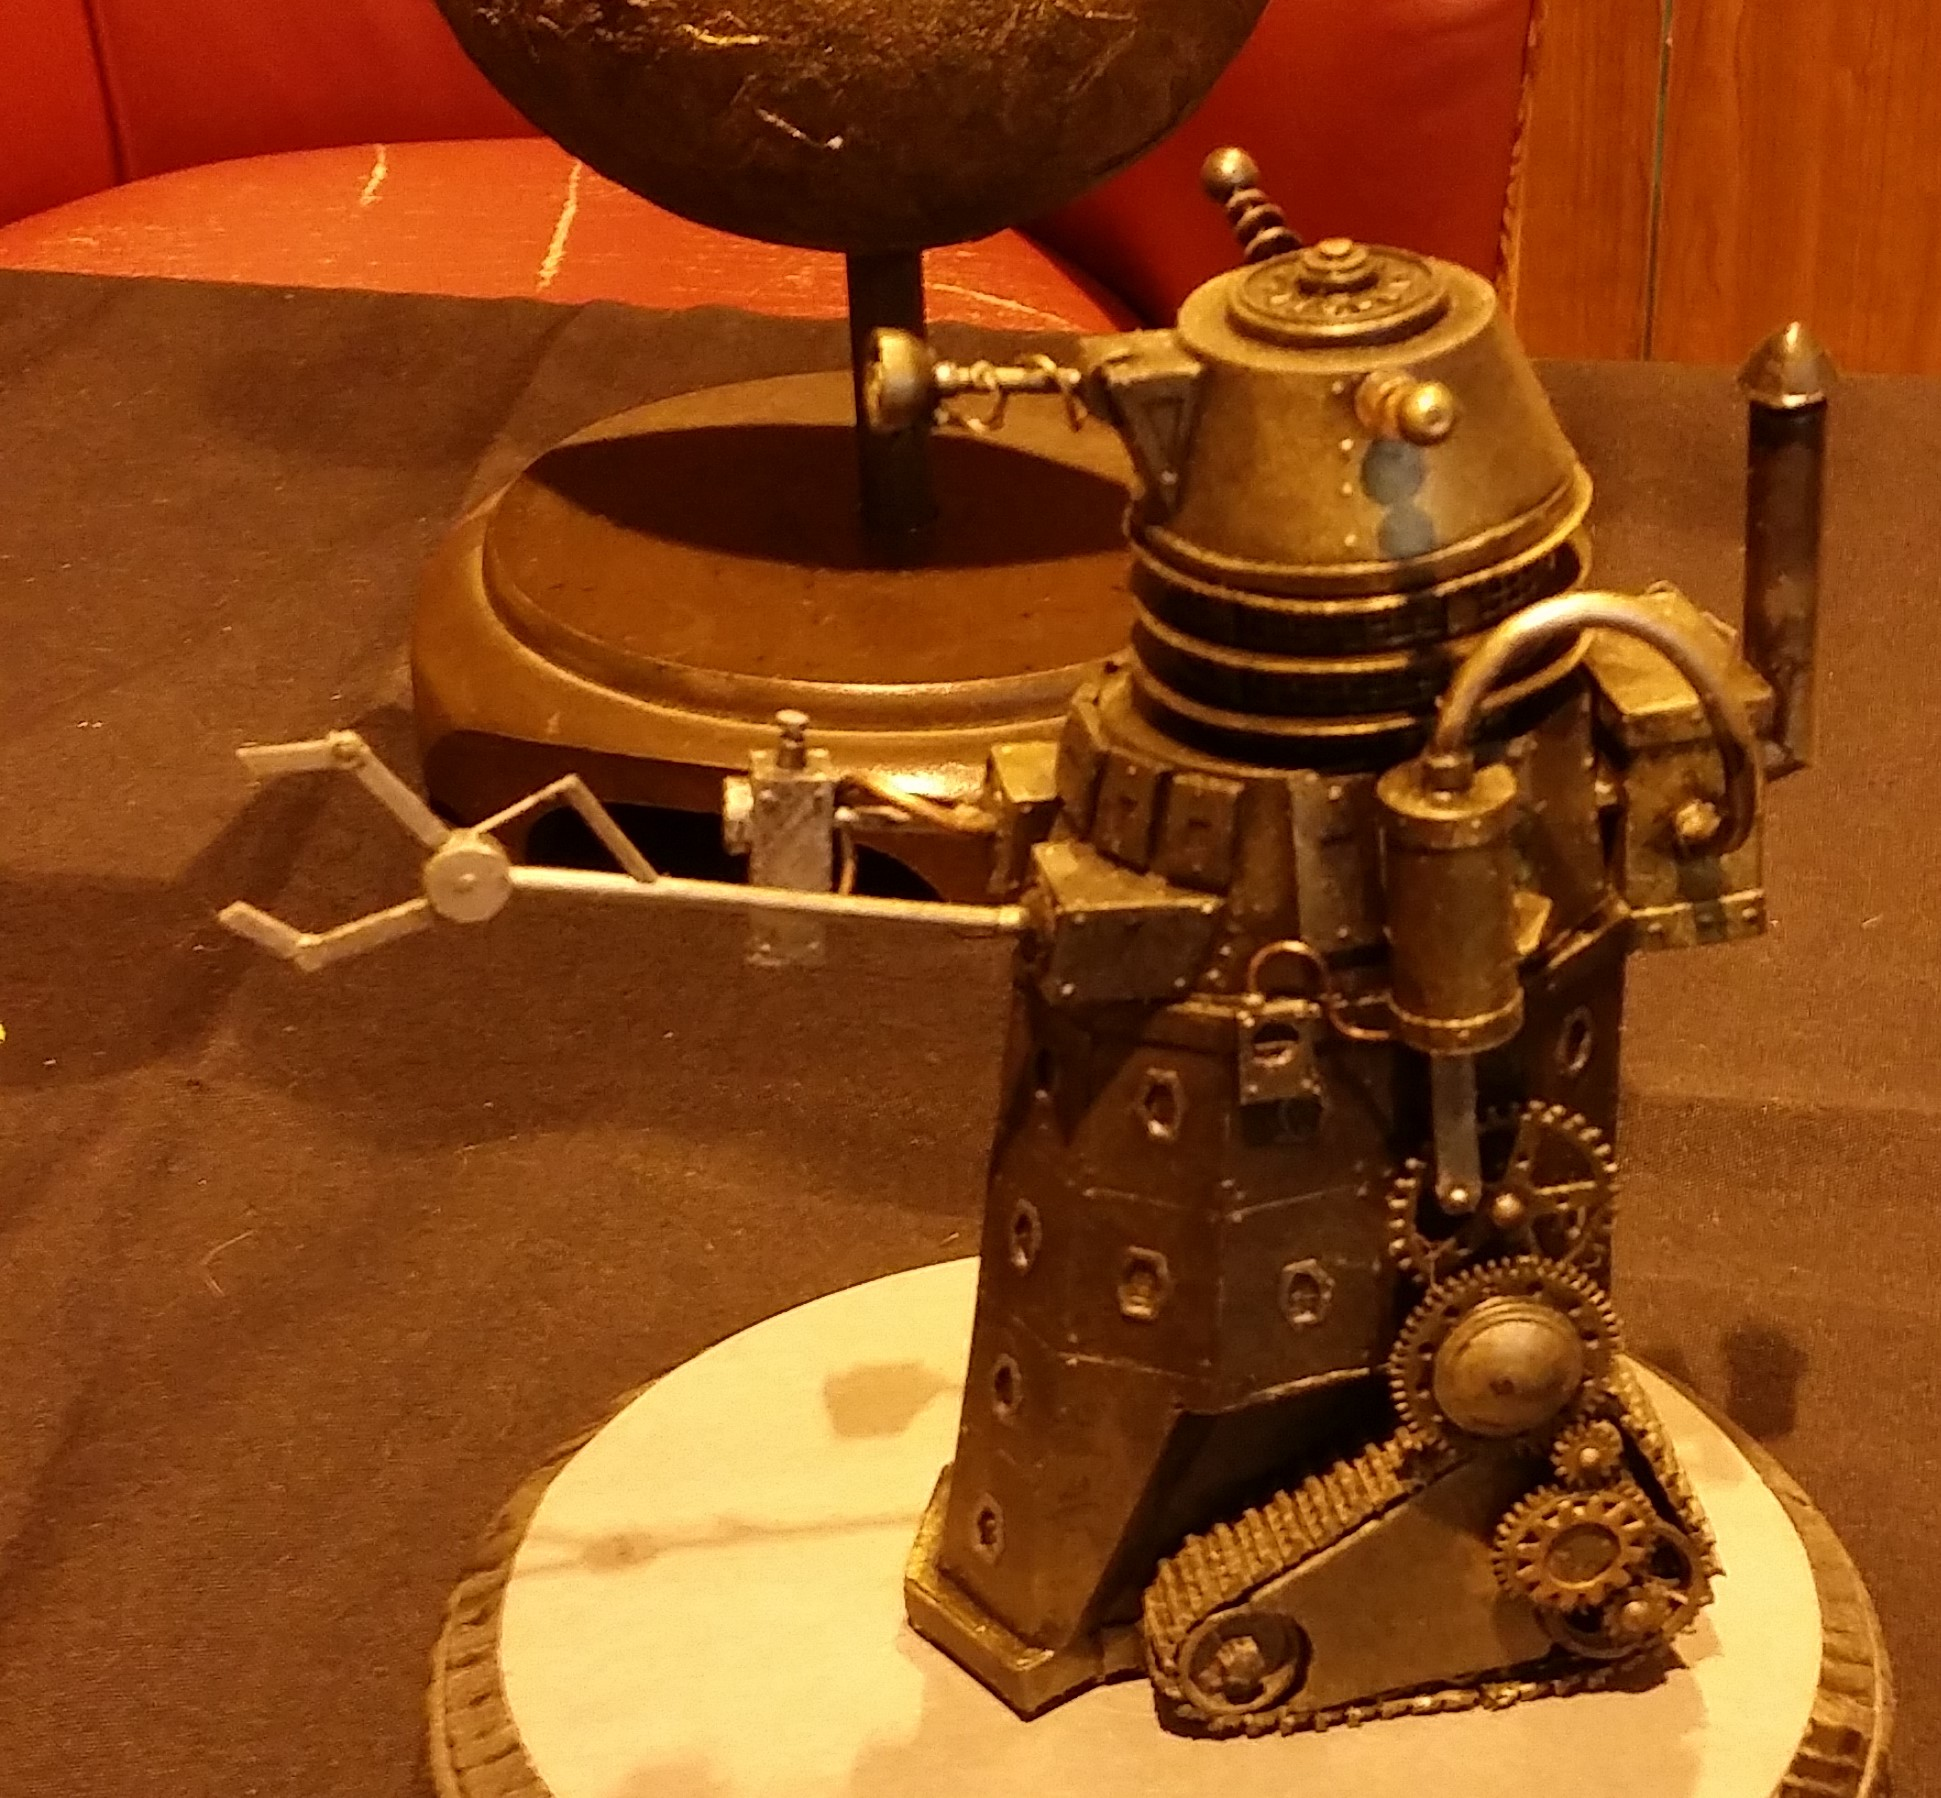 Creativity can take traditional forms - ask you can see with this steampunk metal Dalek sculpture.